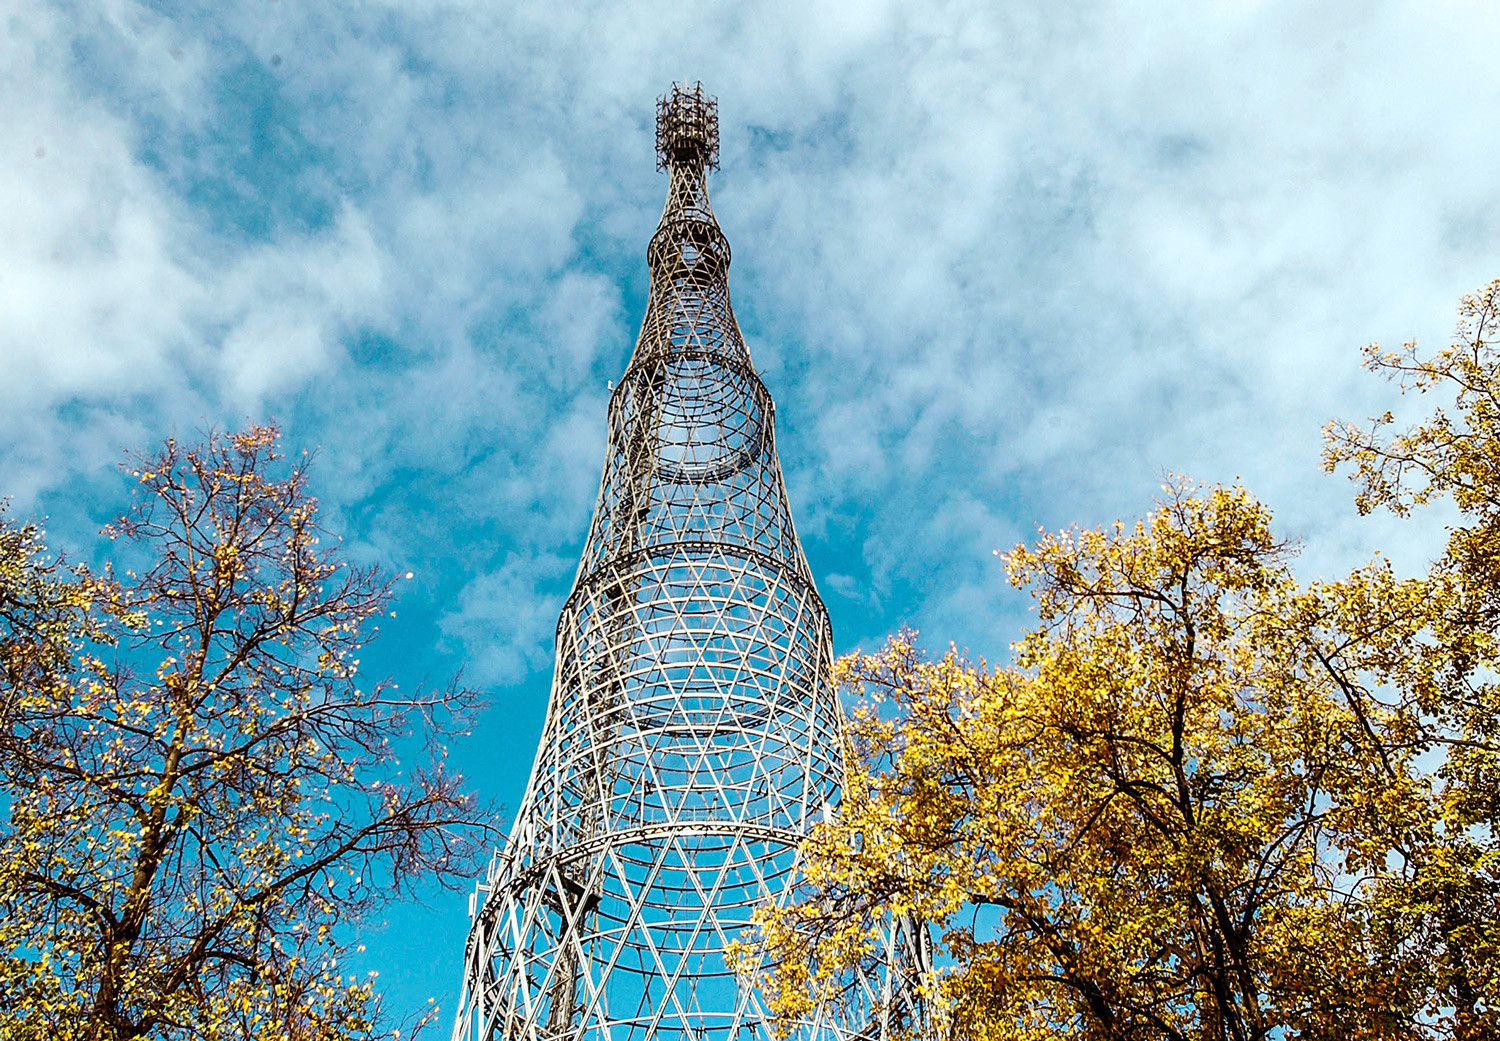 Shabolovka Tower by Shukhov in Moscow